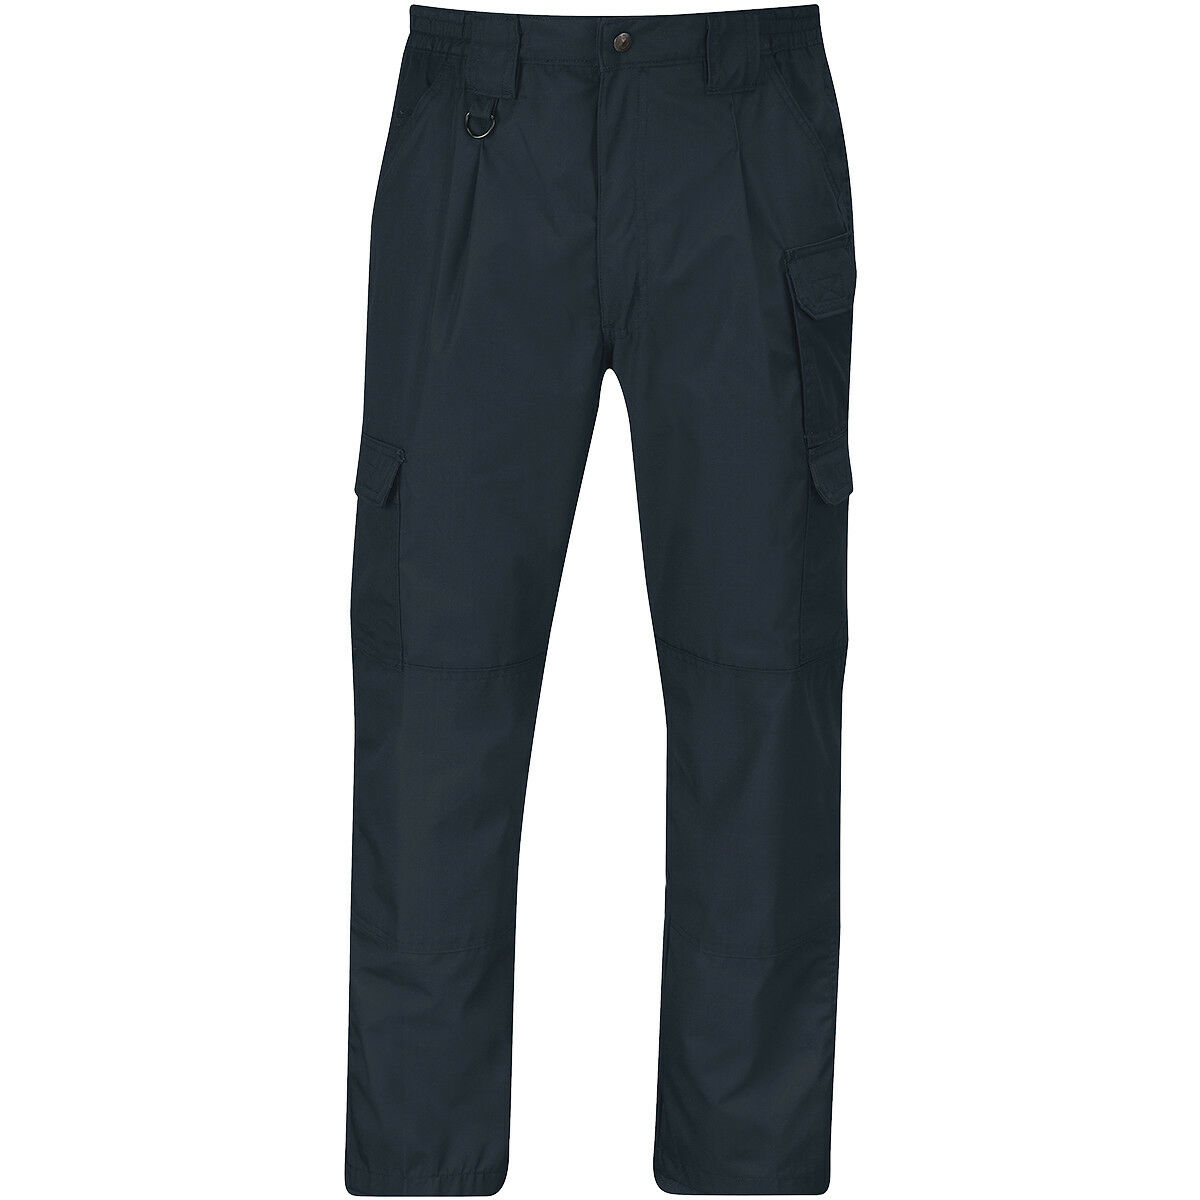 Propper Mens Lightweight Tactical Pants Ripstop Marine Uniform Trouser LAPD Navy